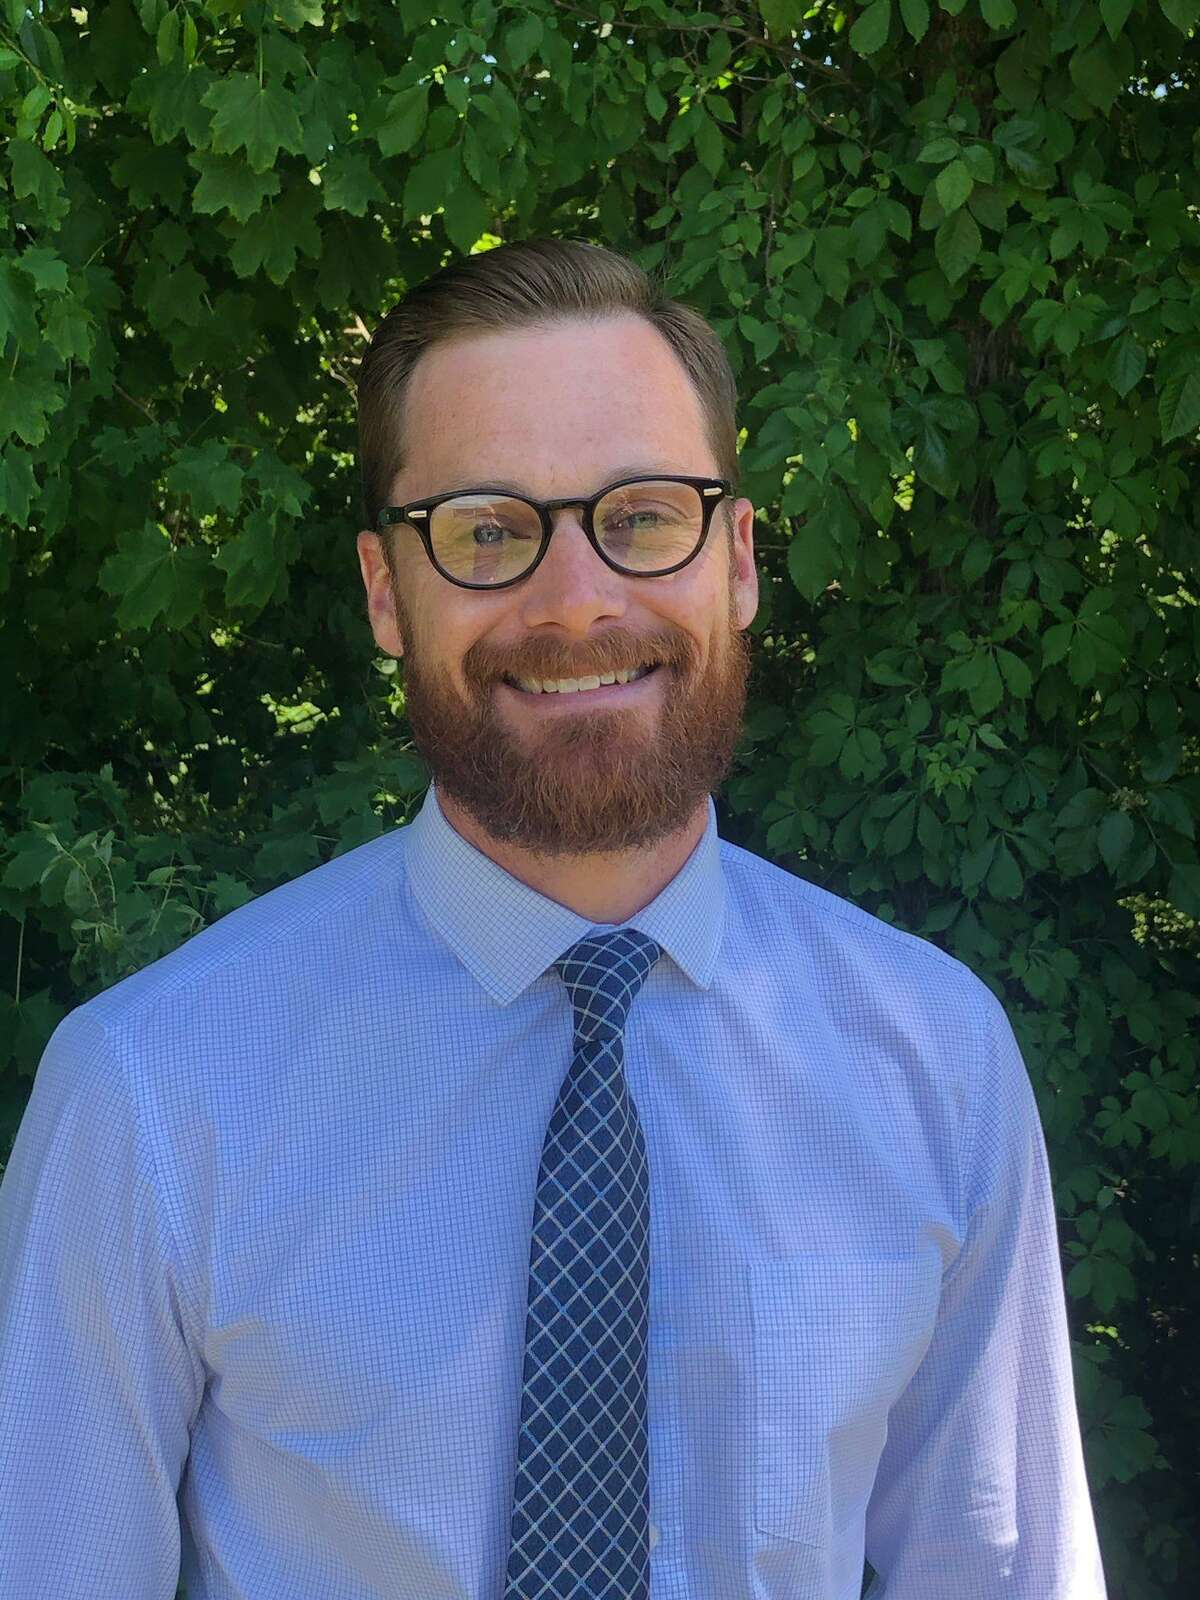 Dr. Jacob (Jake) Greenwood has been named the new principal at Ridgefield High School. Greenwood previously taught at the school from 1999 to 2012.